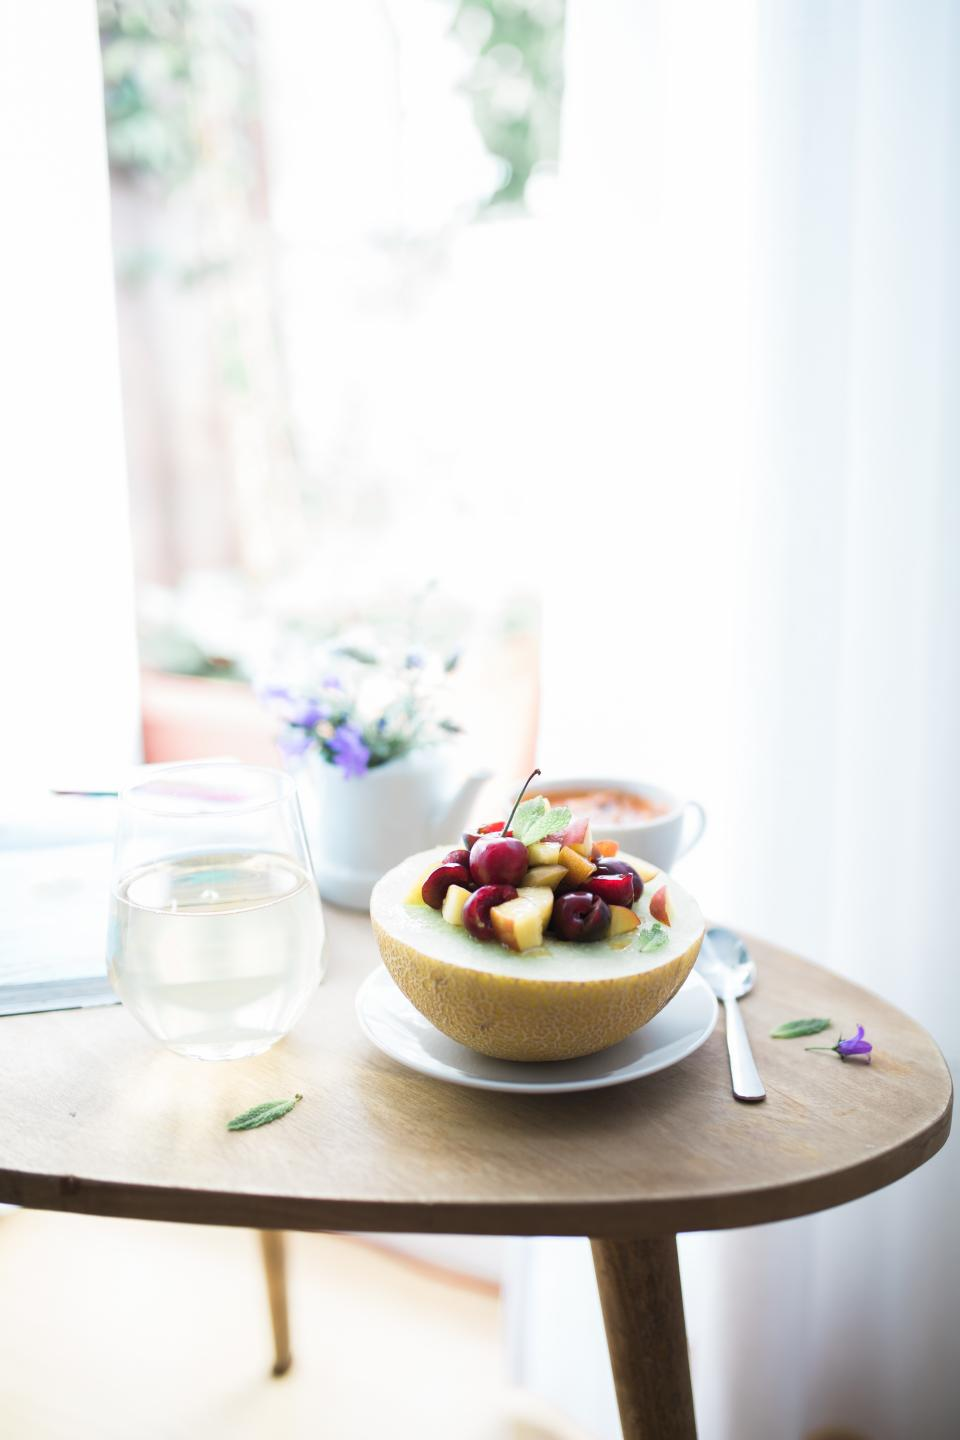 food, eat, gourmet, sliced, diced, fruits, vegetables, garnish, melon, honeydew, bowl, table, spread, plates, cups, flowers, teapot, curtains, white